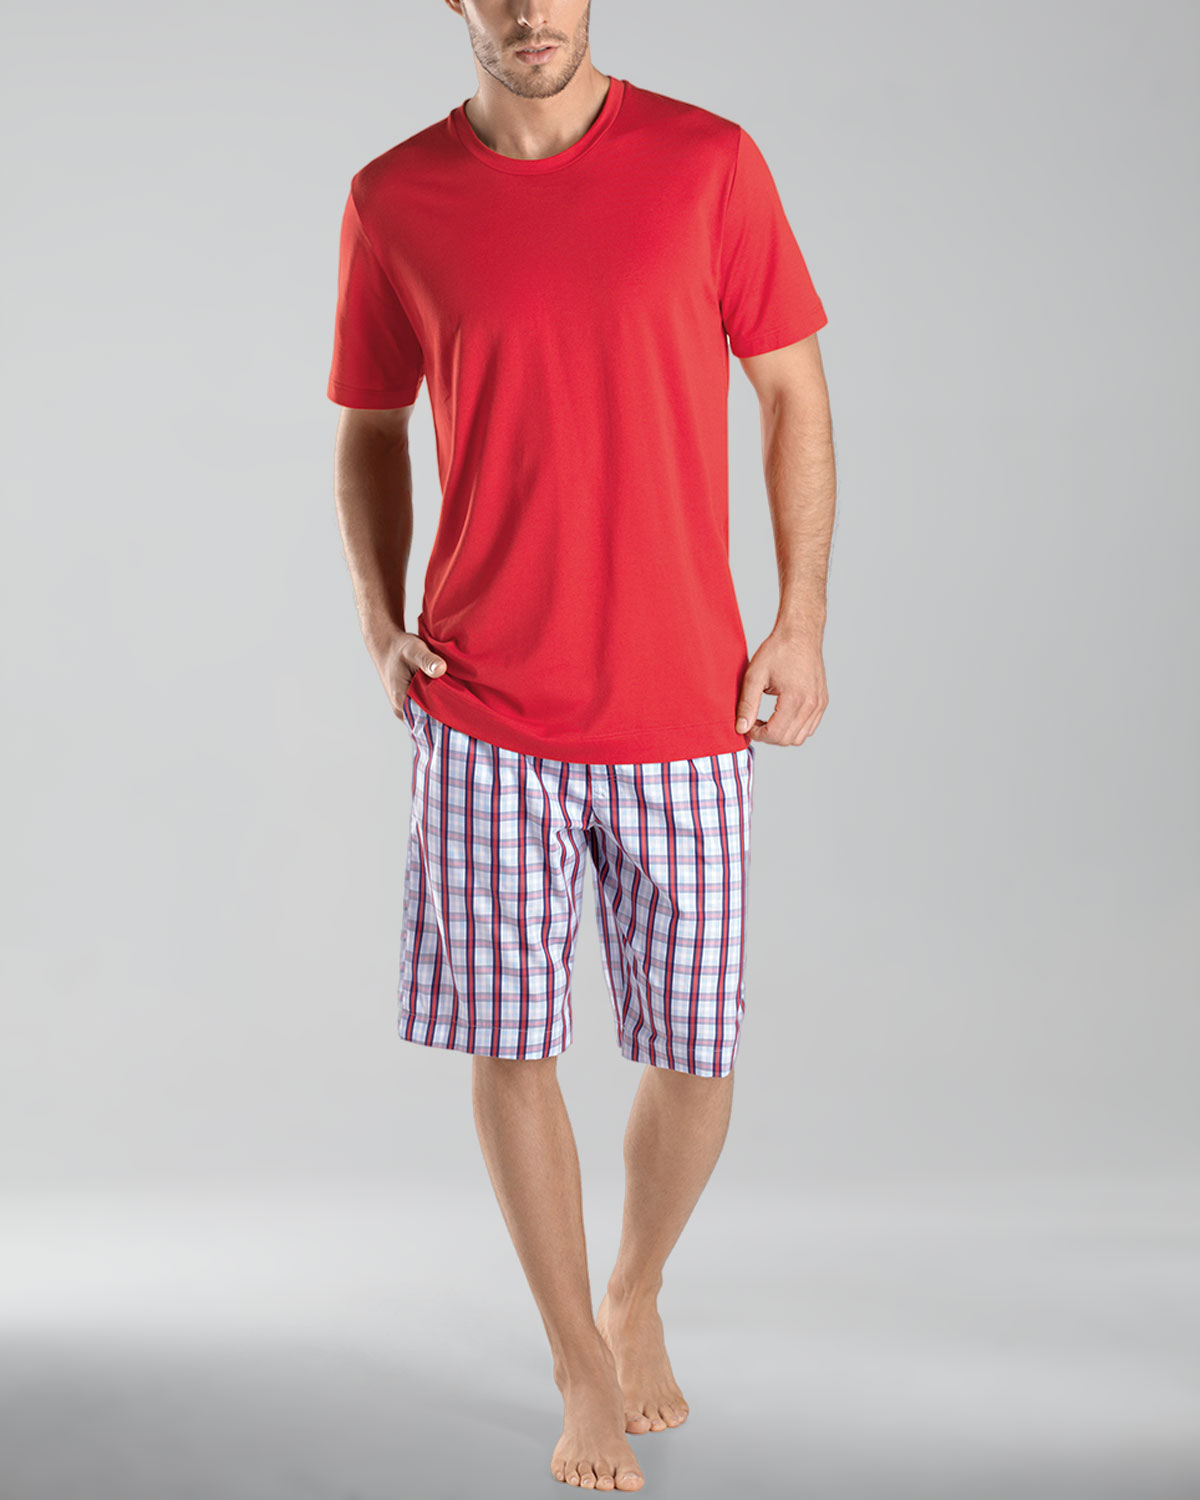 Shop the Latest Collection of Shorts Pajamas, loungewear, and sleepwear for Men Online at vanduload.tk FREE SHIPPING AVAILABLE!